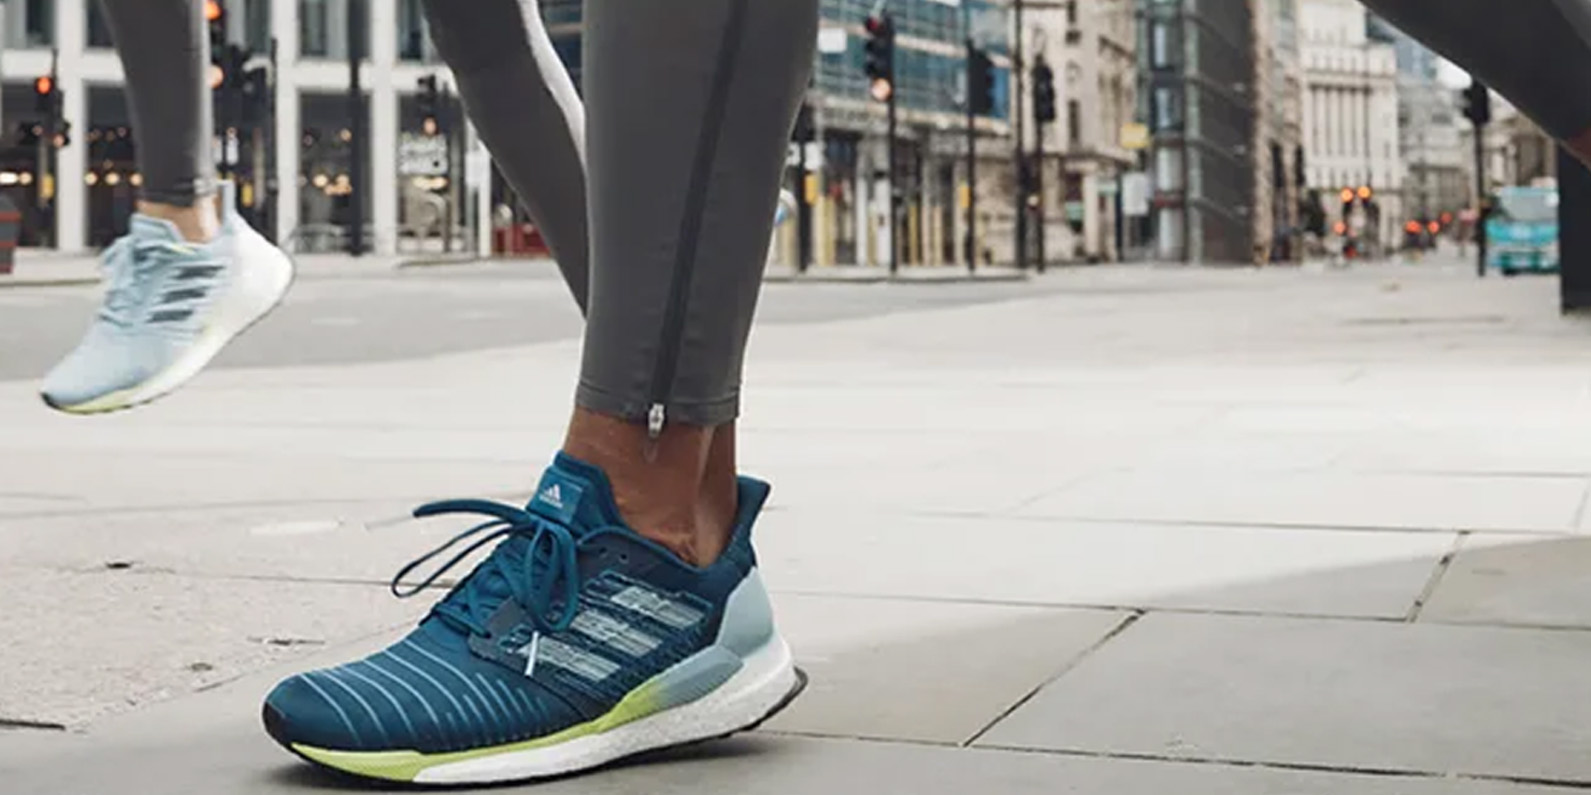 Best women's running shoes for this fall: Nike, adidas, more